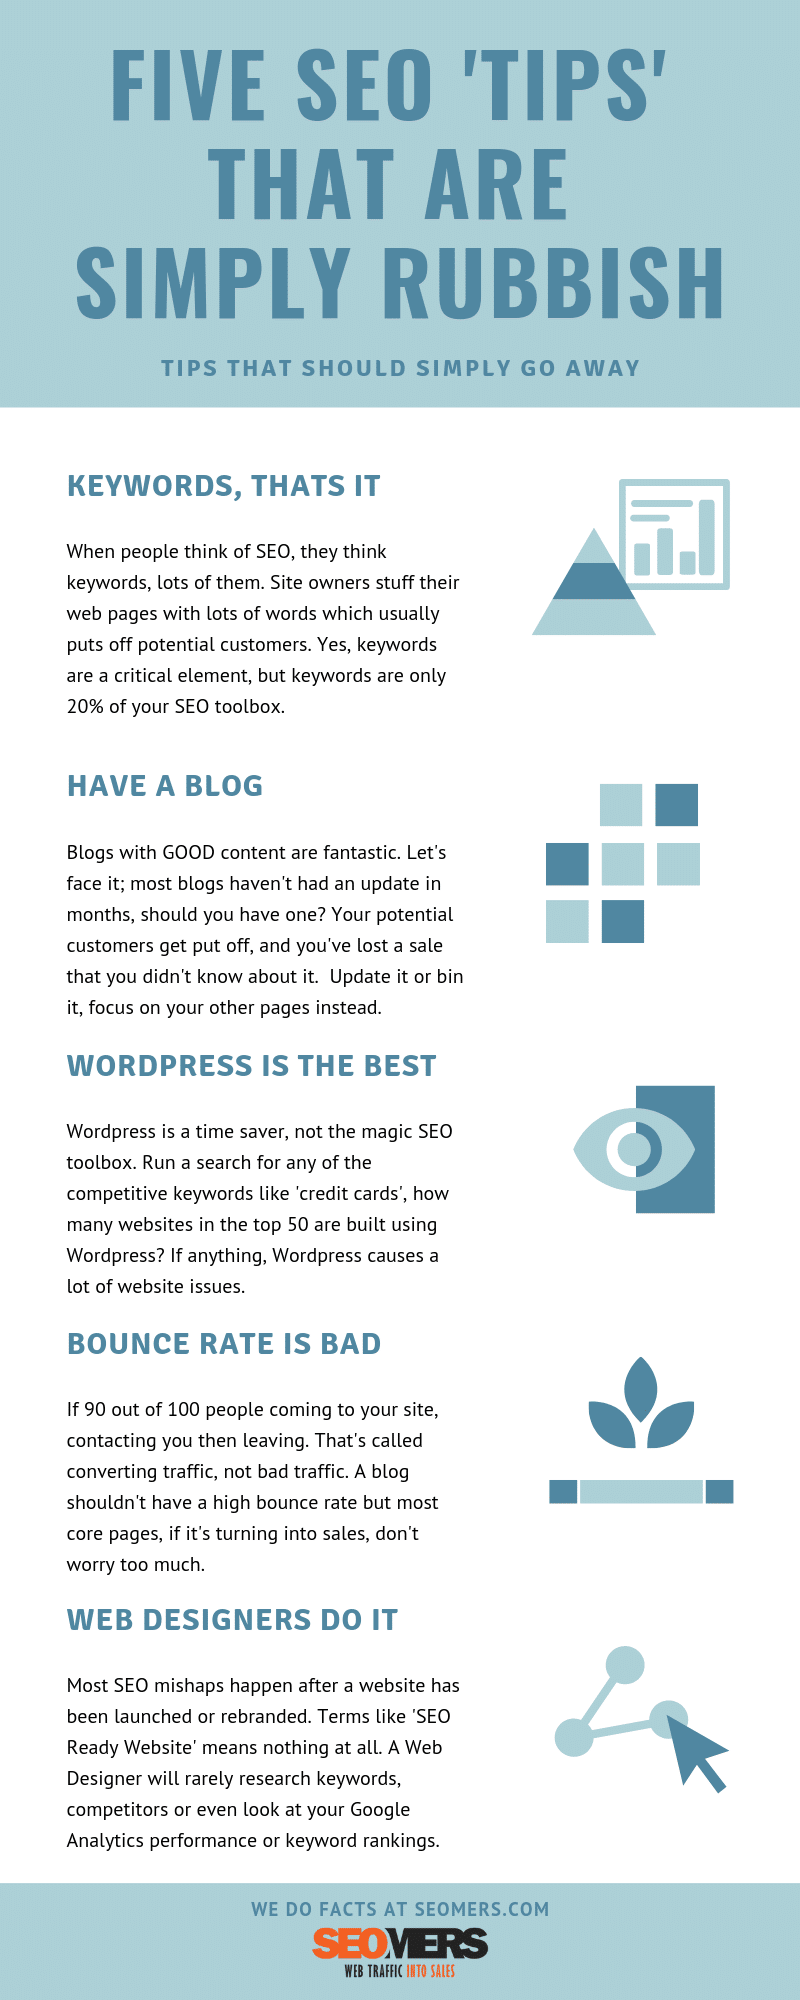 SEO Myths 2018